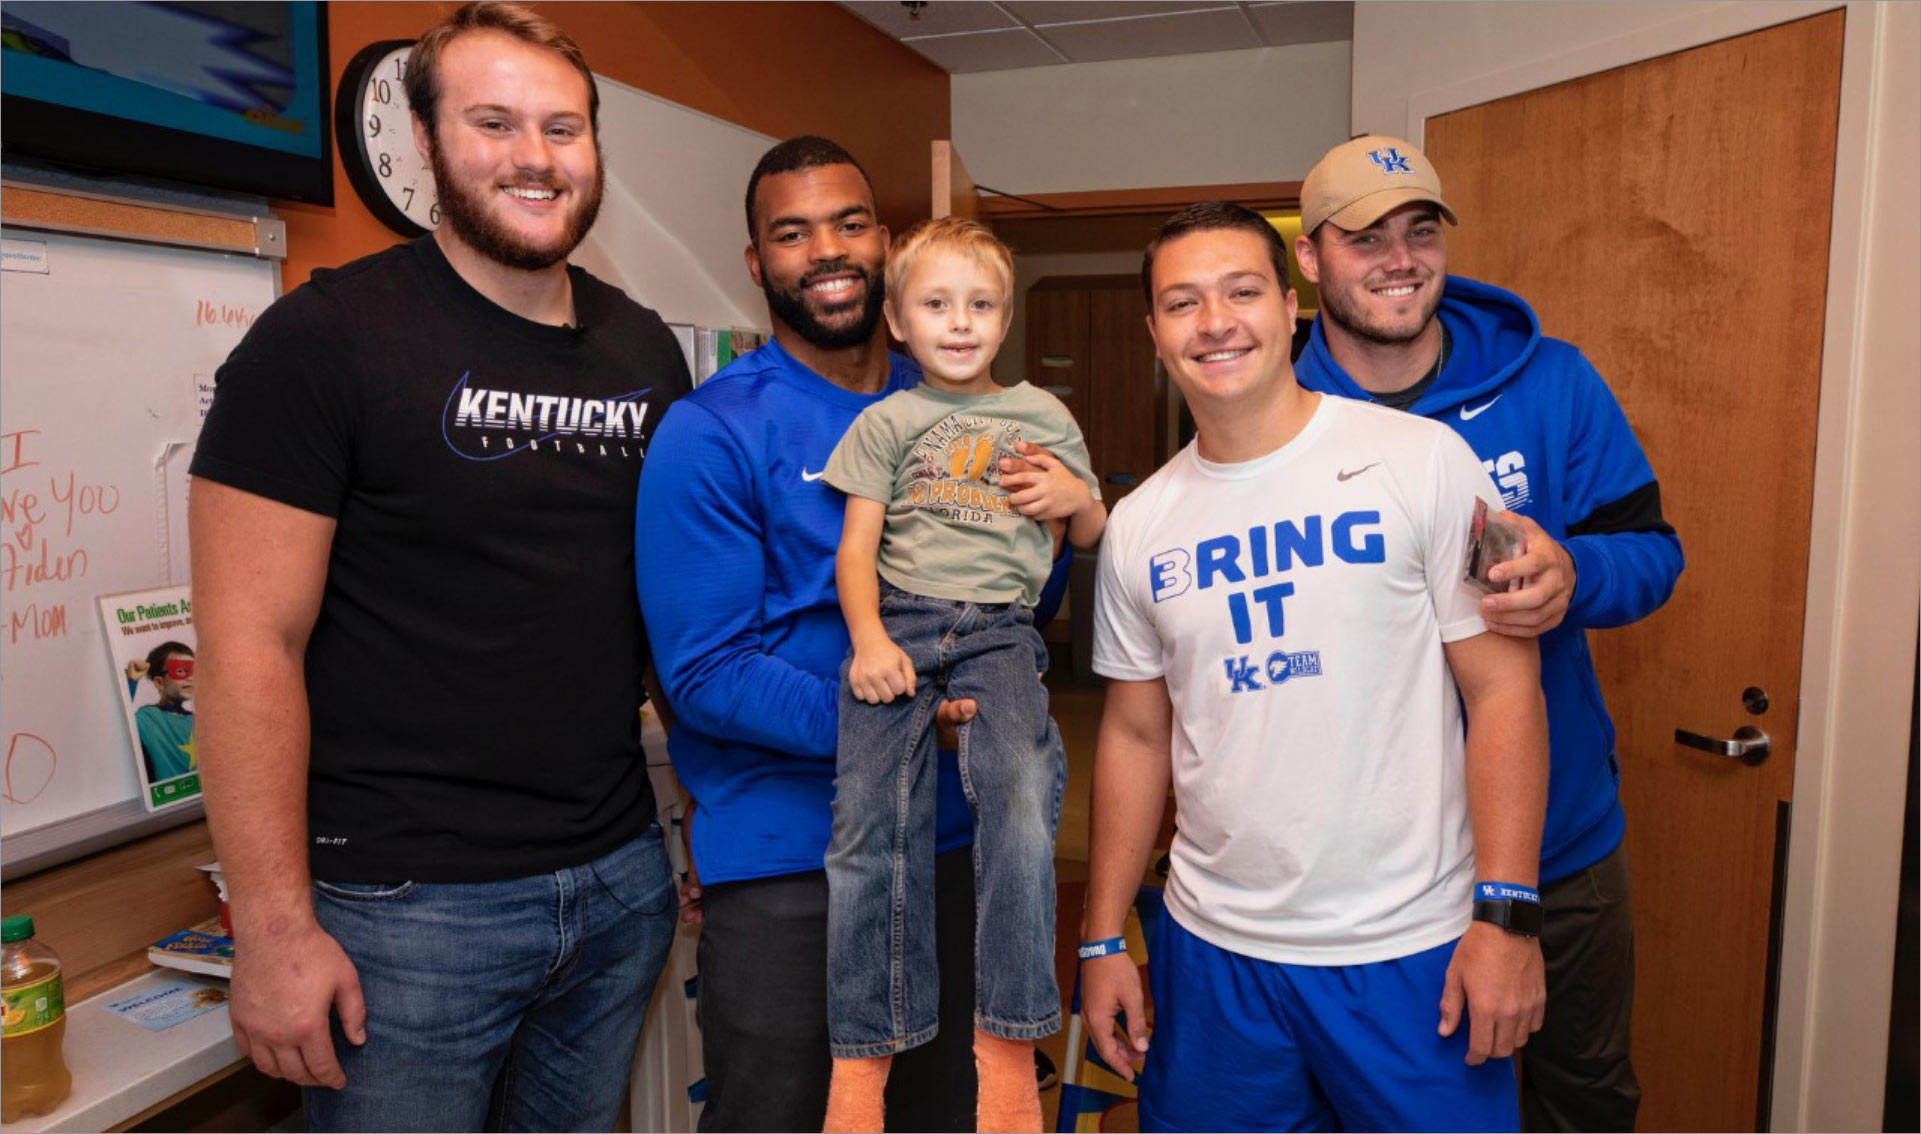 Courtney and three football players visit with a young patient at Kentucky Children's Hospital. Courtney is holding the patient, a little boy, in his arms